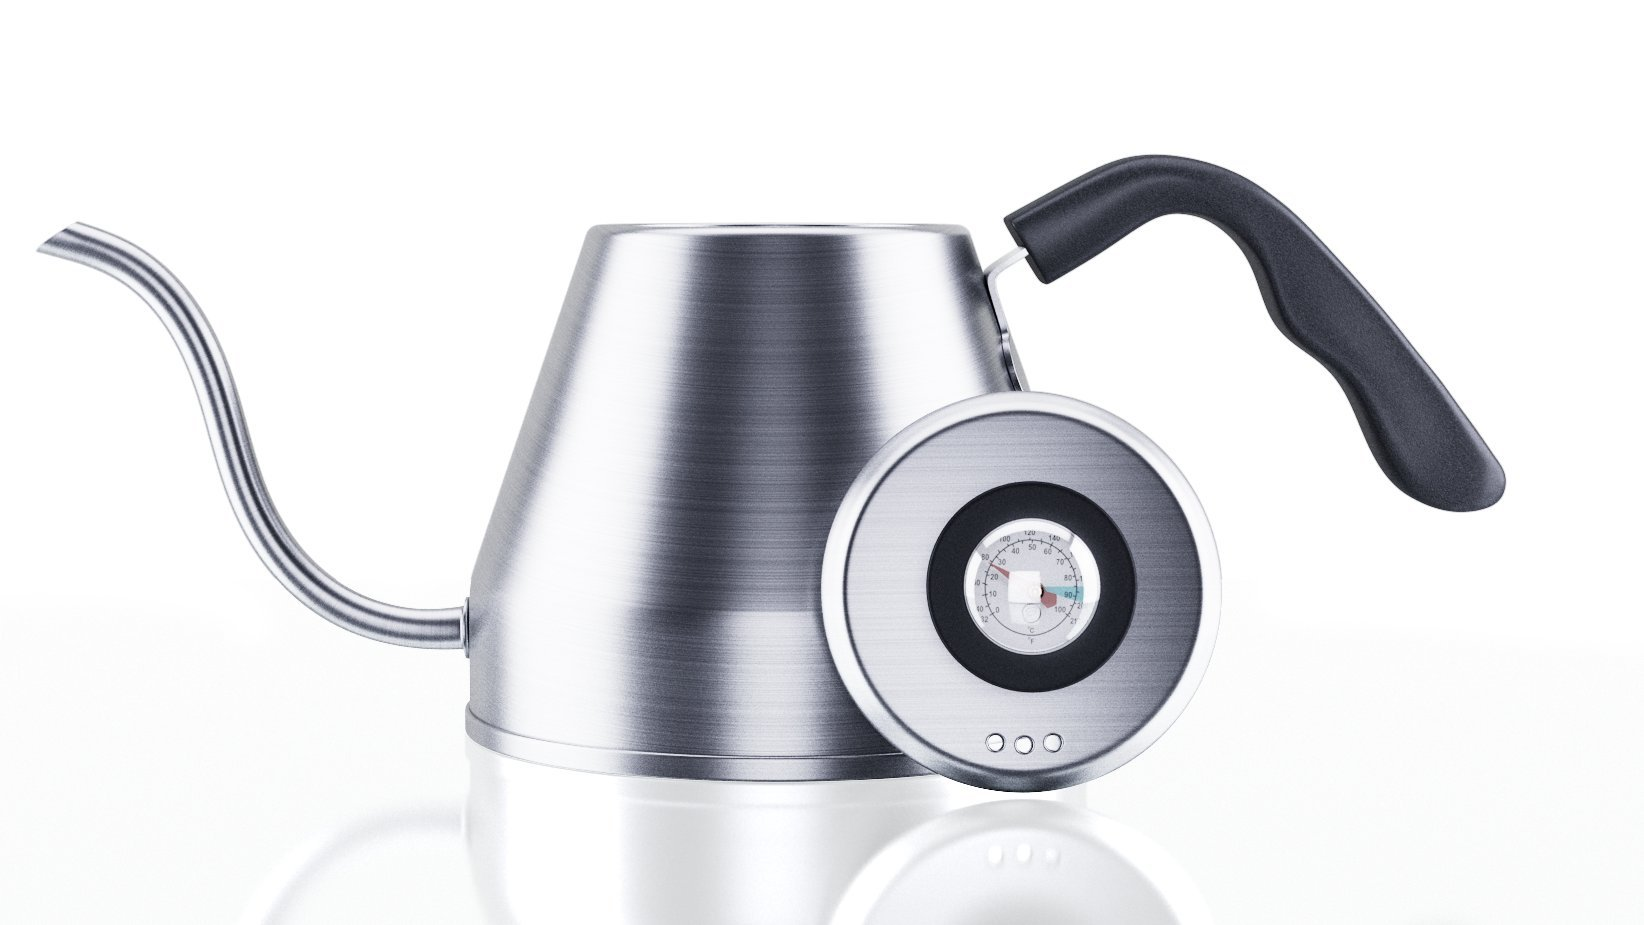 Pour Over Gooseneck Coffee Kettle 1.2L -- Thermometer, Stainless Steel Drip Built In Temperature Gauge